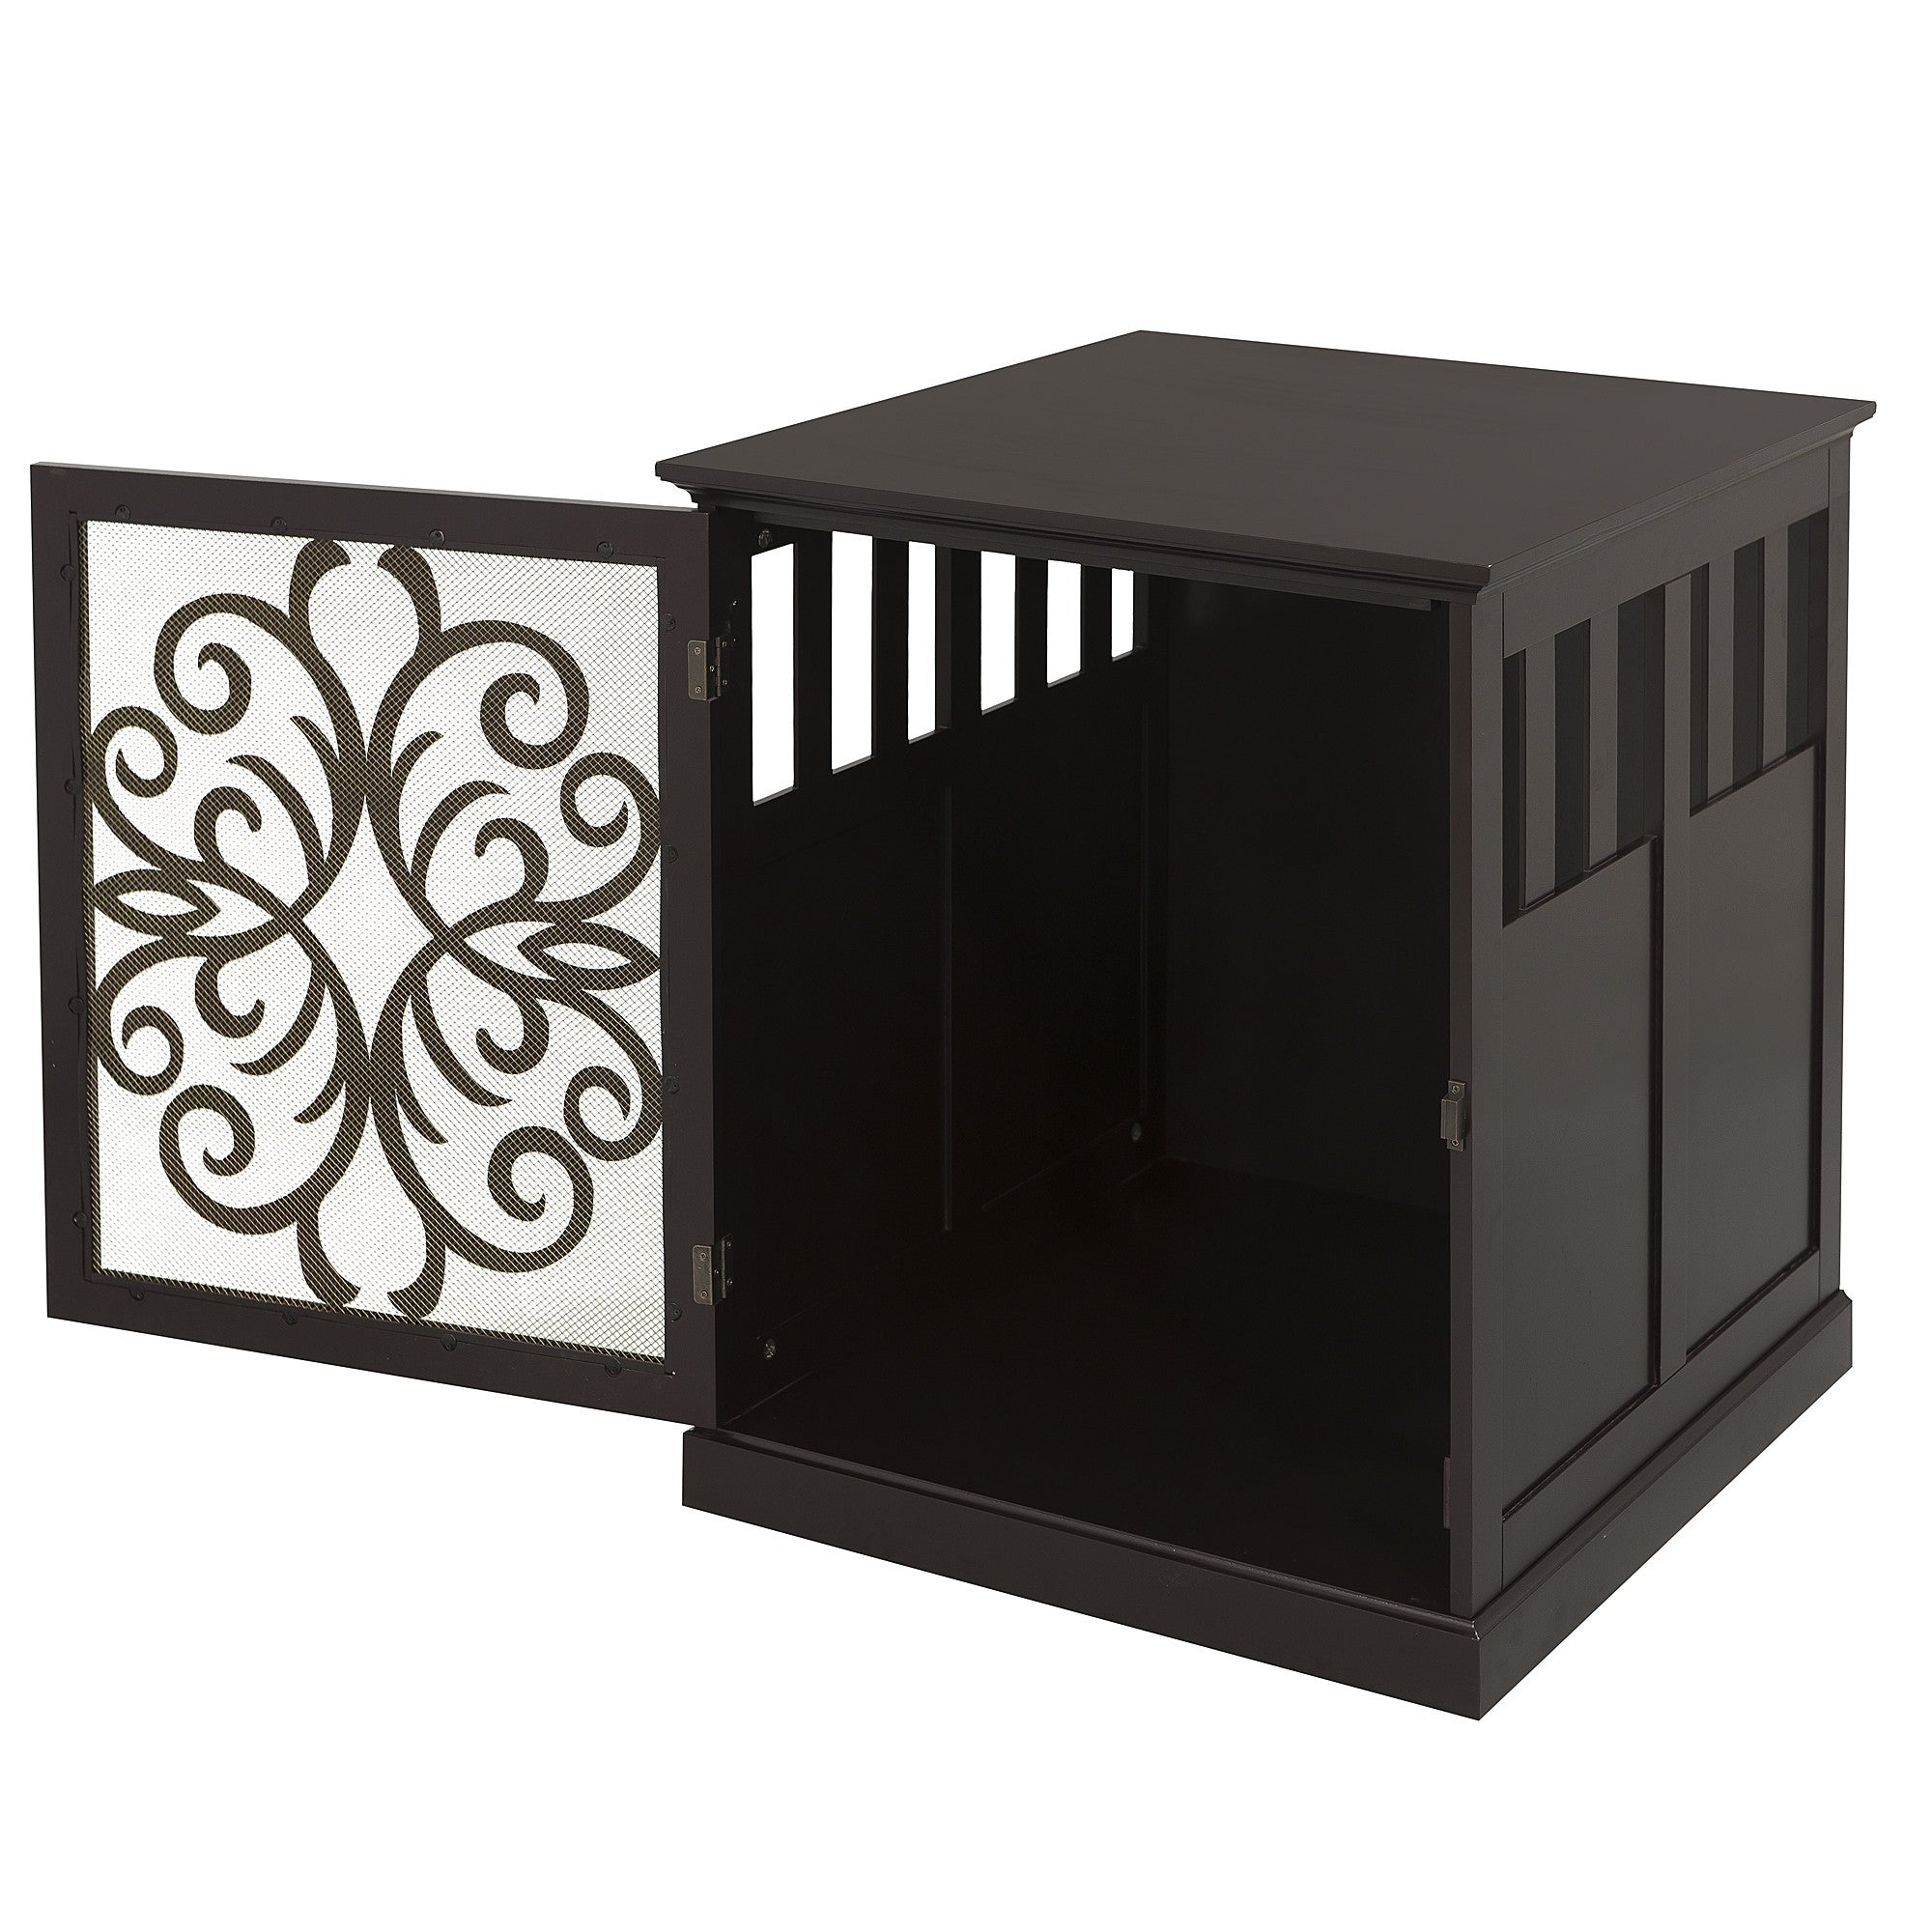 Fancy 2-in-1 Pet Crate Table - Clever and Modern Home and office furniture. Pet Furniture